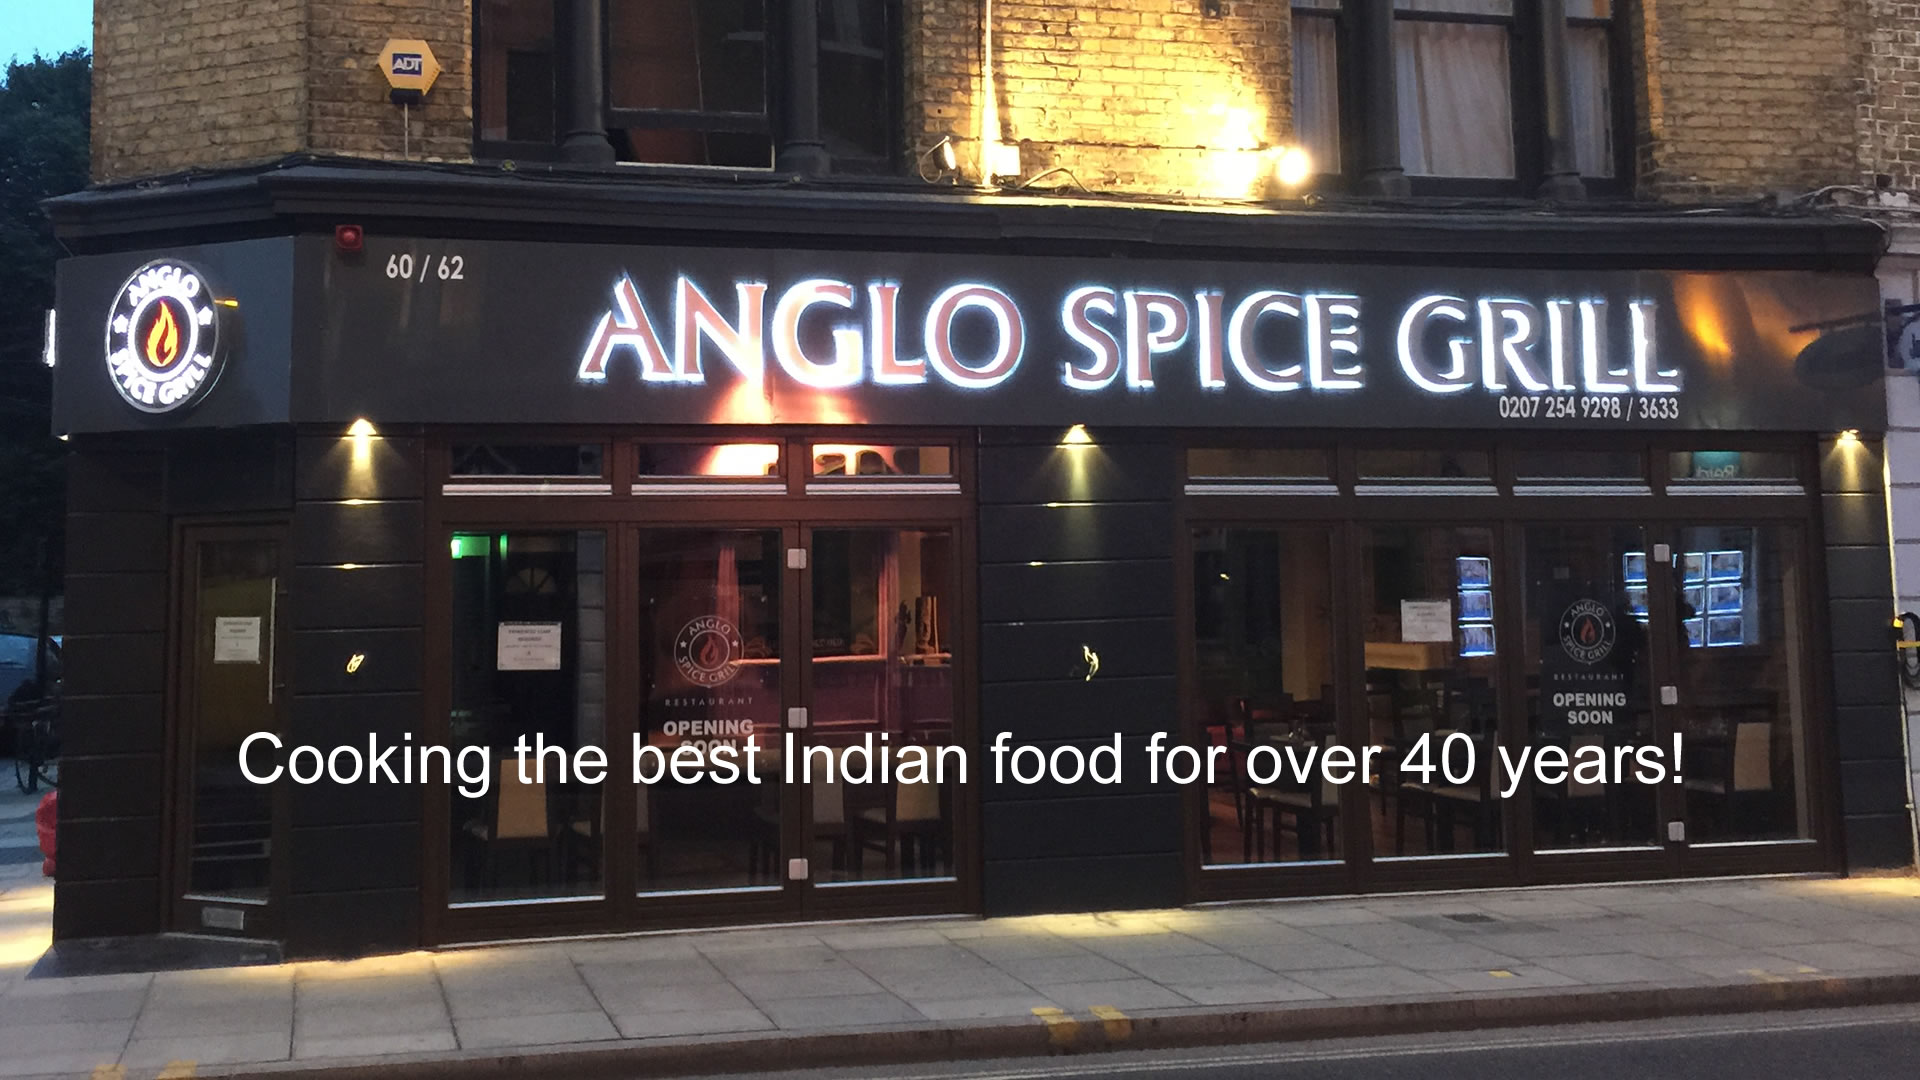 Cooking the best Indian food for over 40 years!